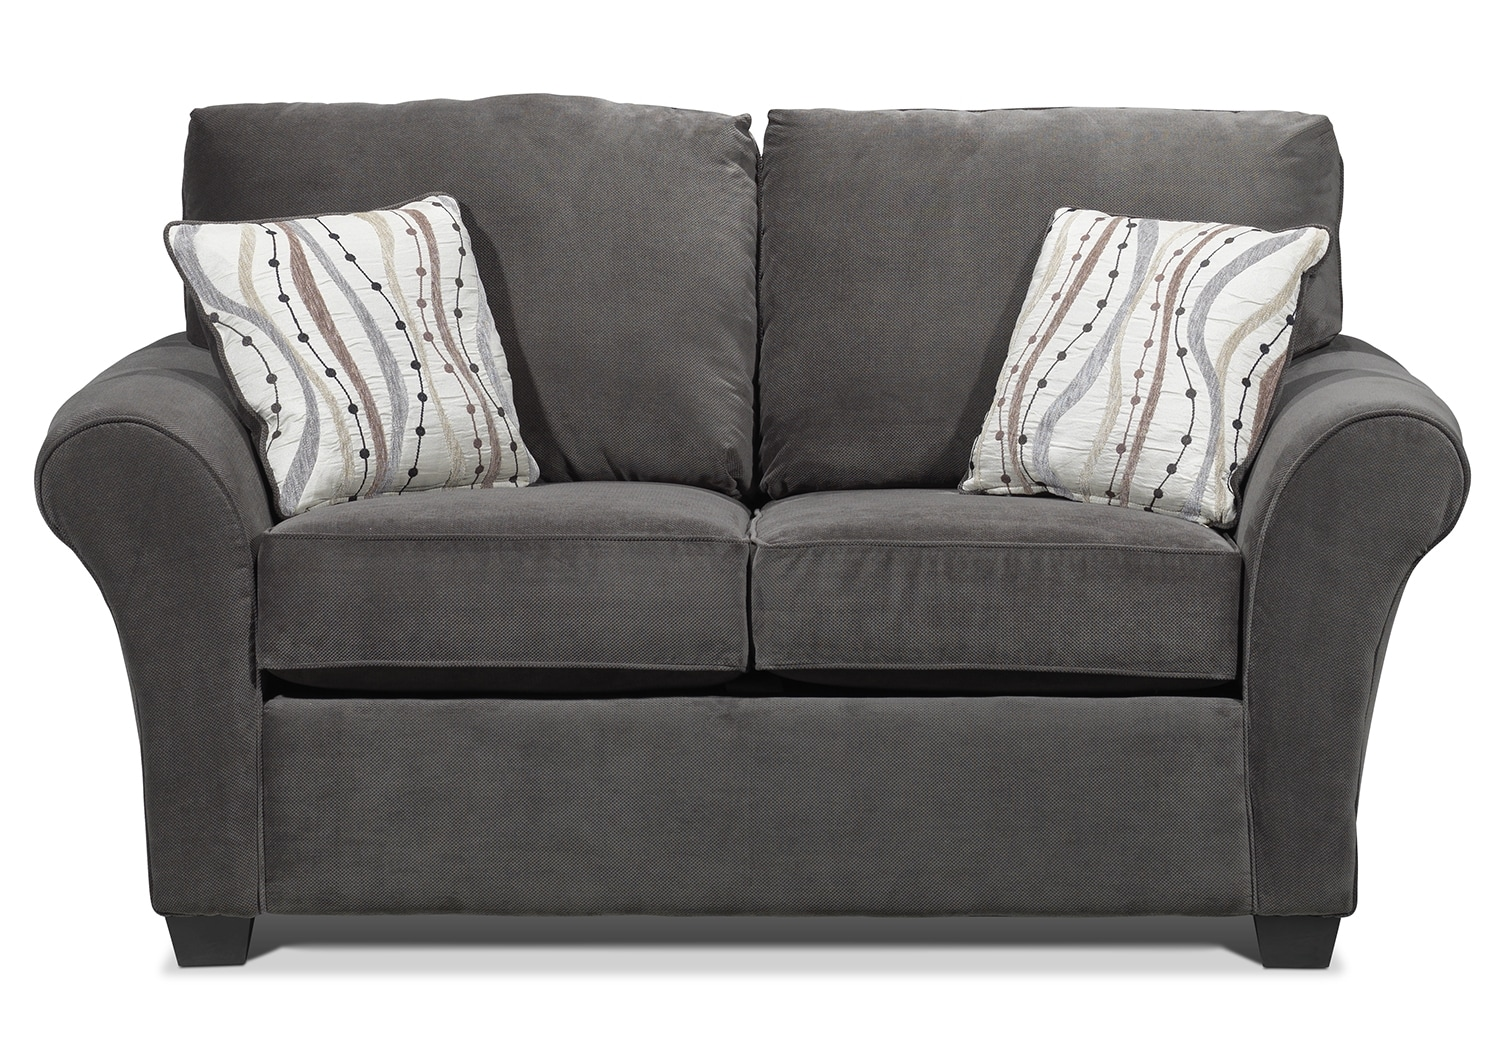 leon s sofas soft leather sectional langley sofa charcoal 39s